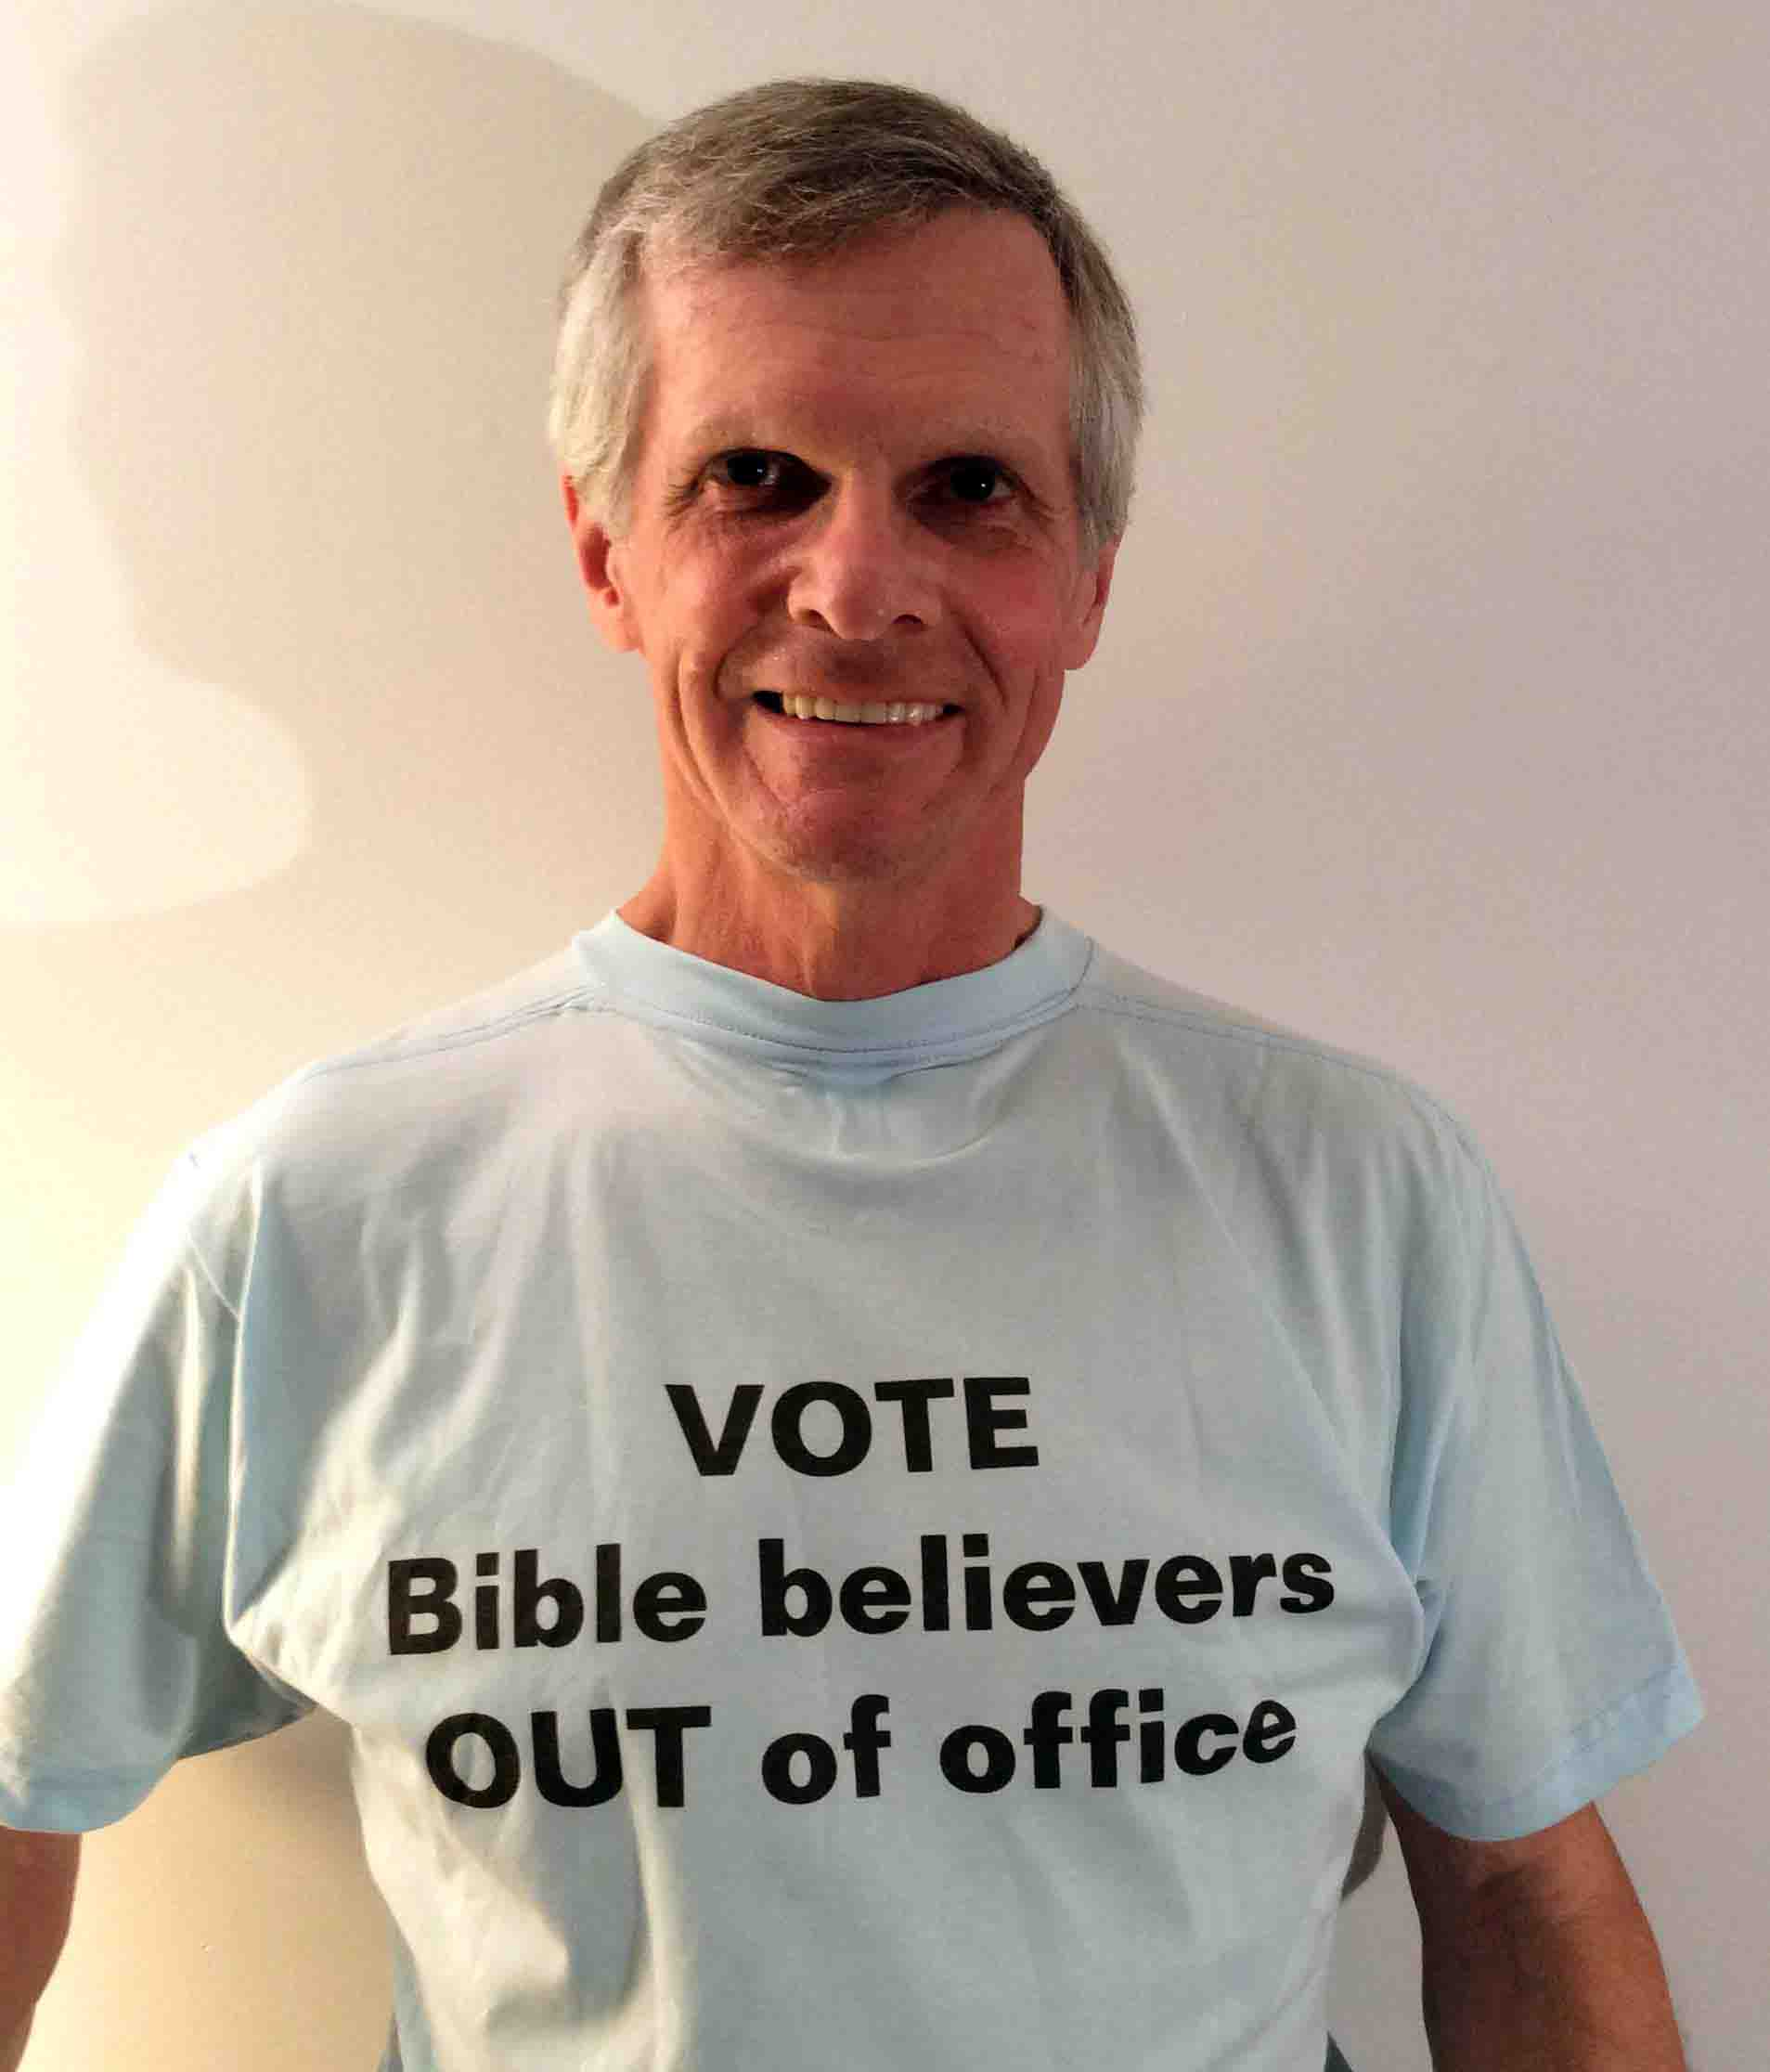 Darwin Bedford wearing his shirt that says 'Vote Bible believers OUT of office'